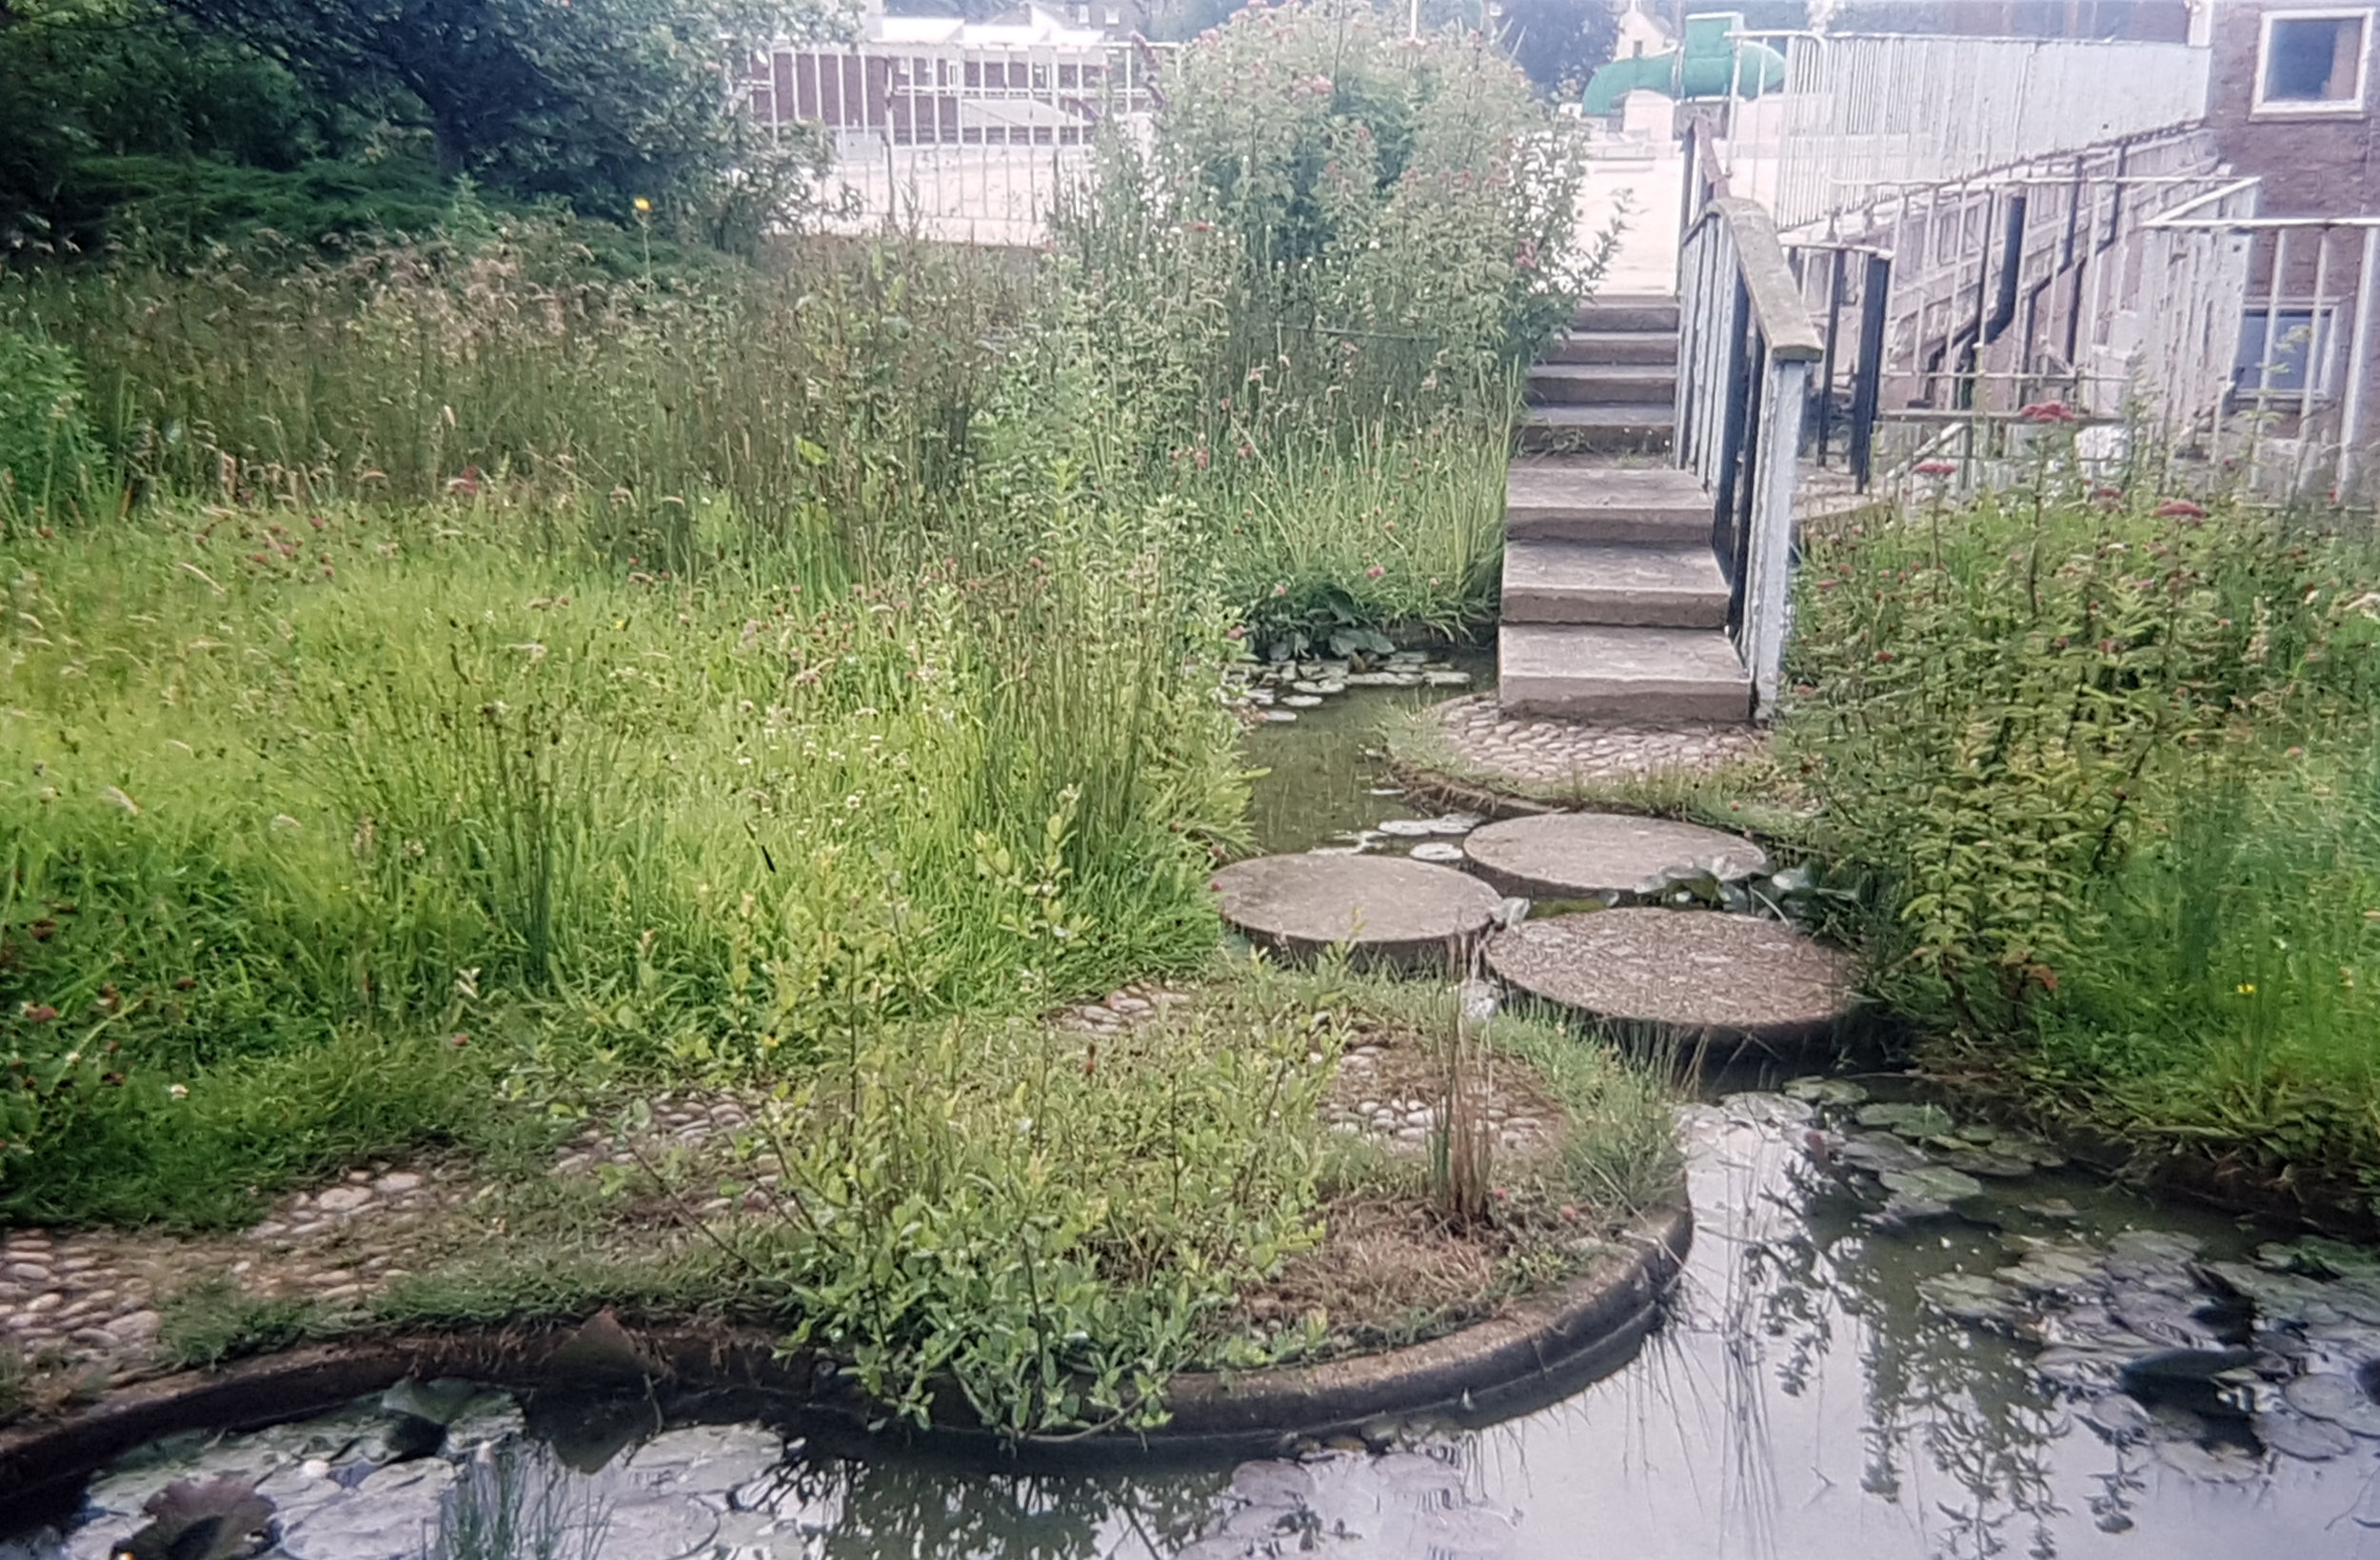 In 1997 before restoration showing some of the overgrown and neglected planting